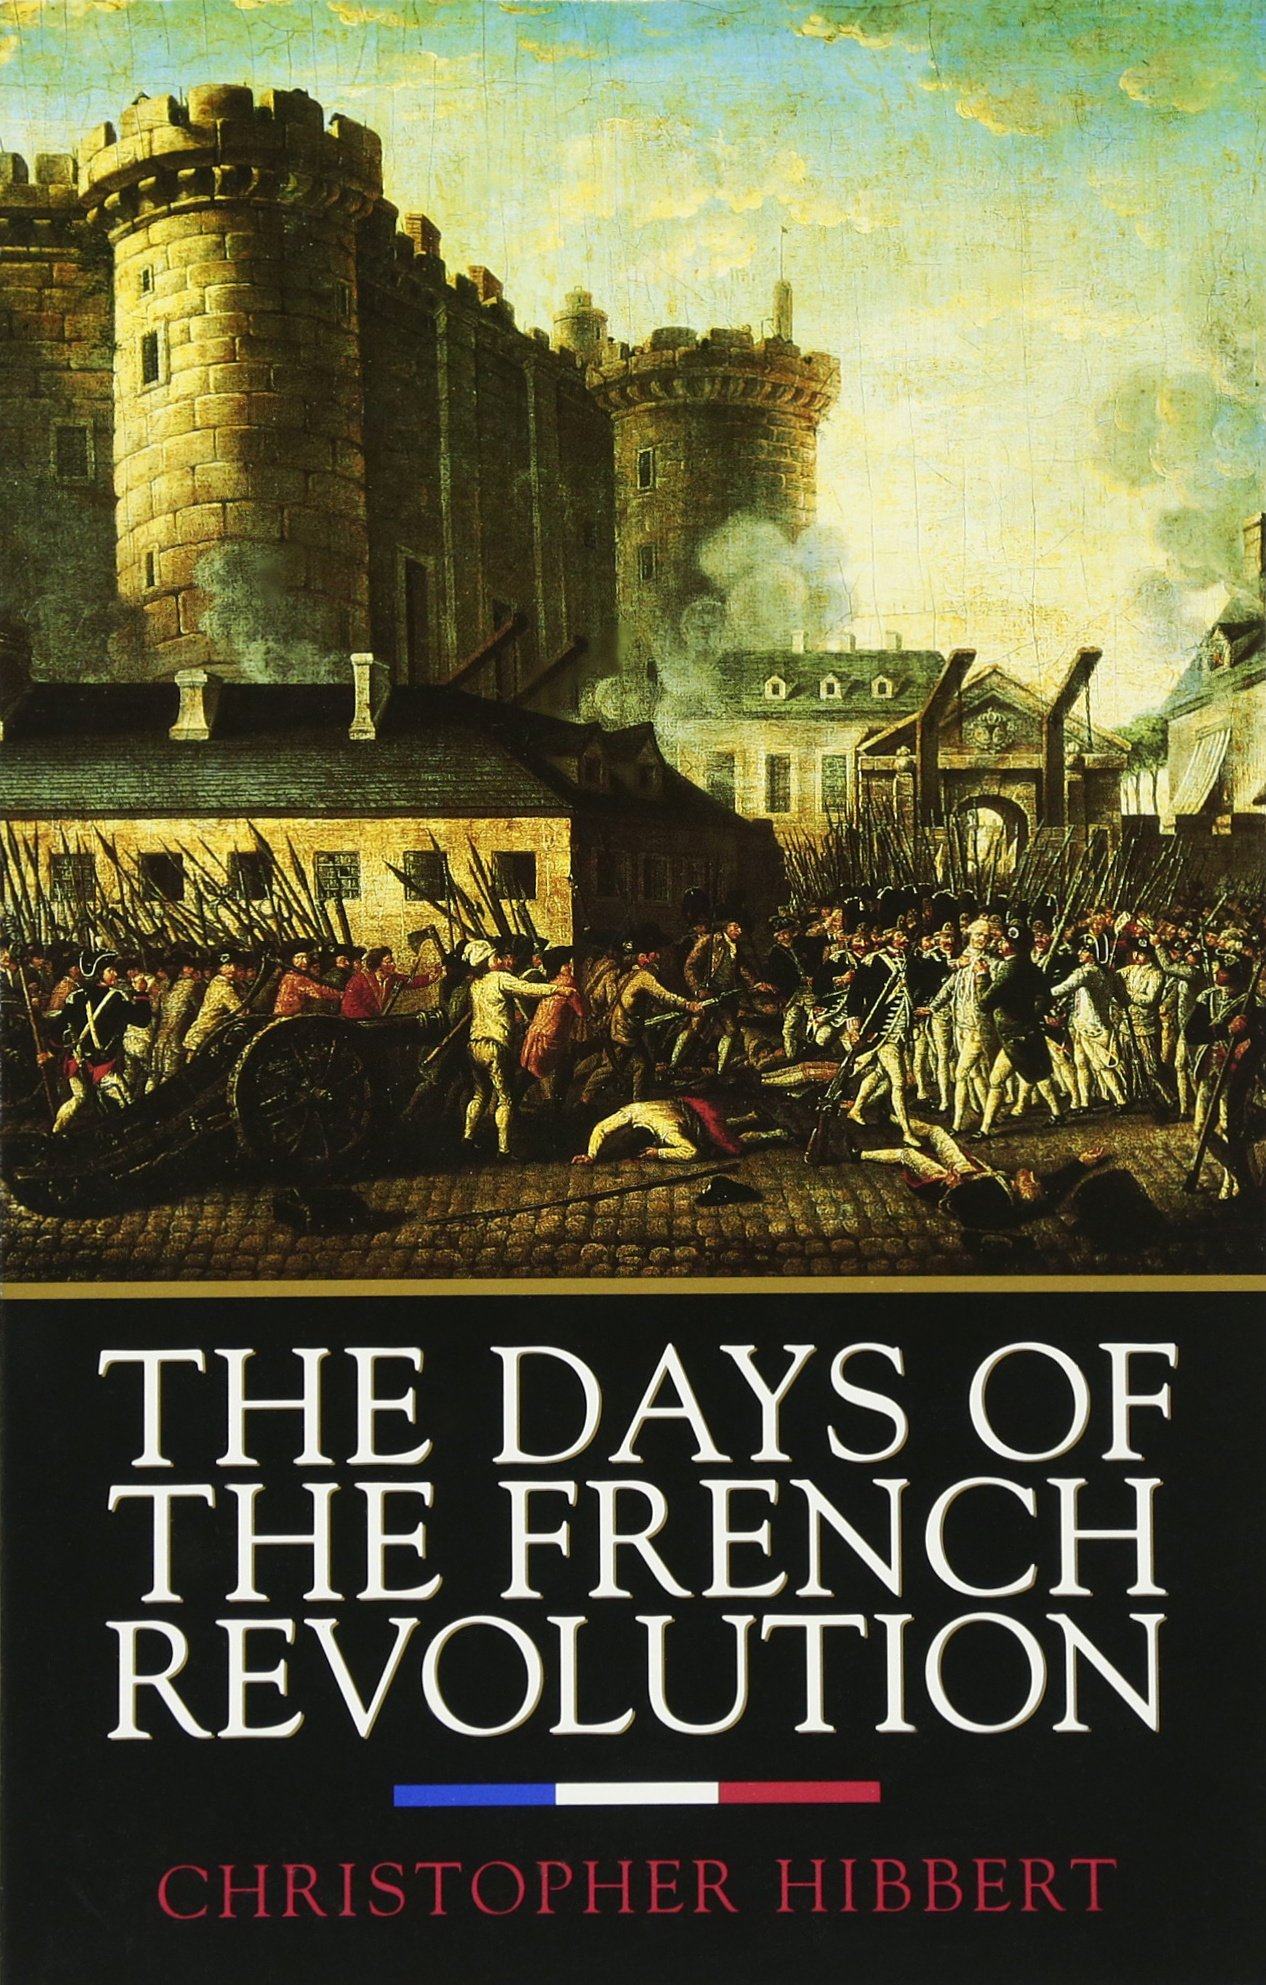 Buy The Days Of The French Revolution Book Online At Low Prices In India   The Days Of The French Revolution Reviews & Ratings  Amazon